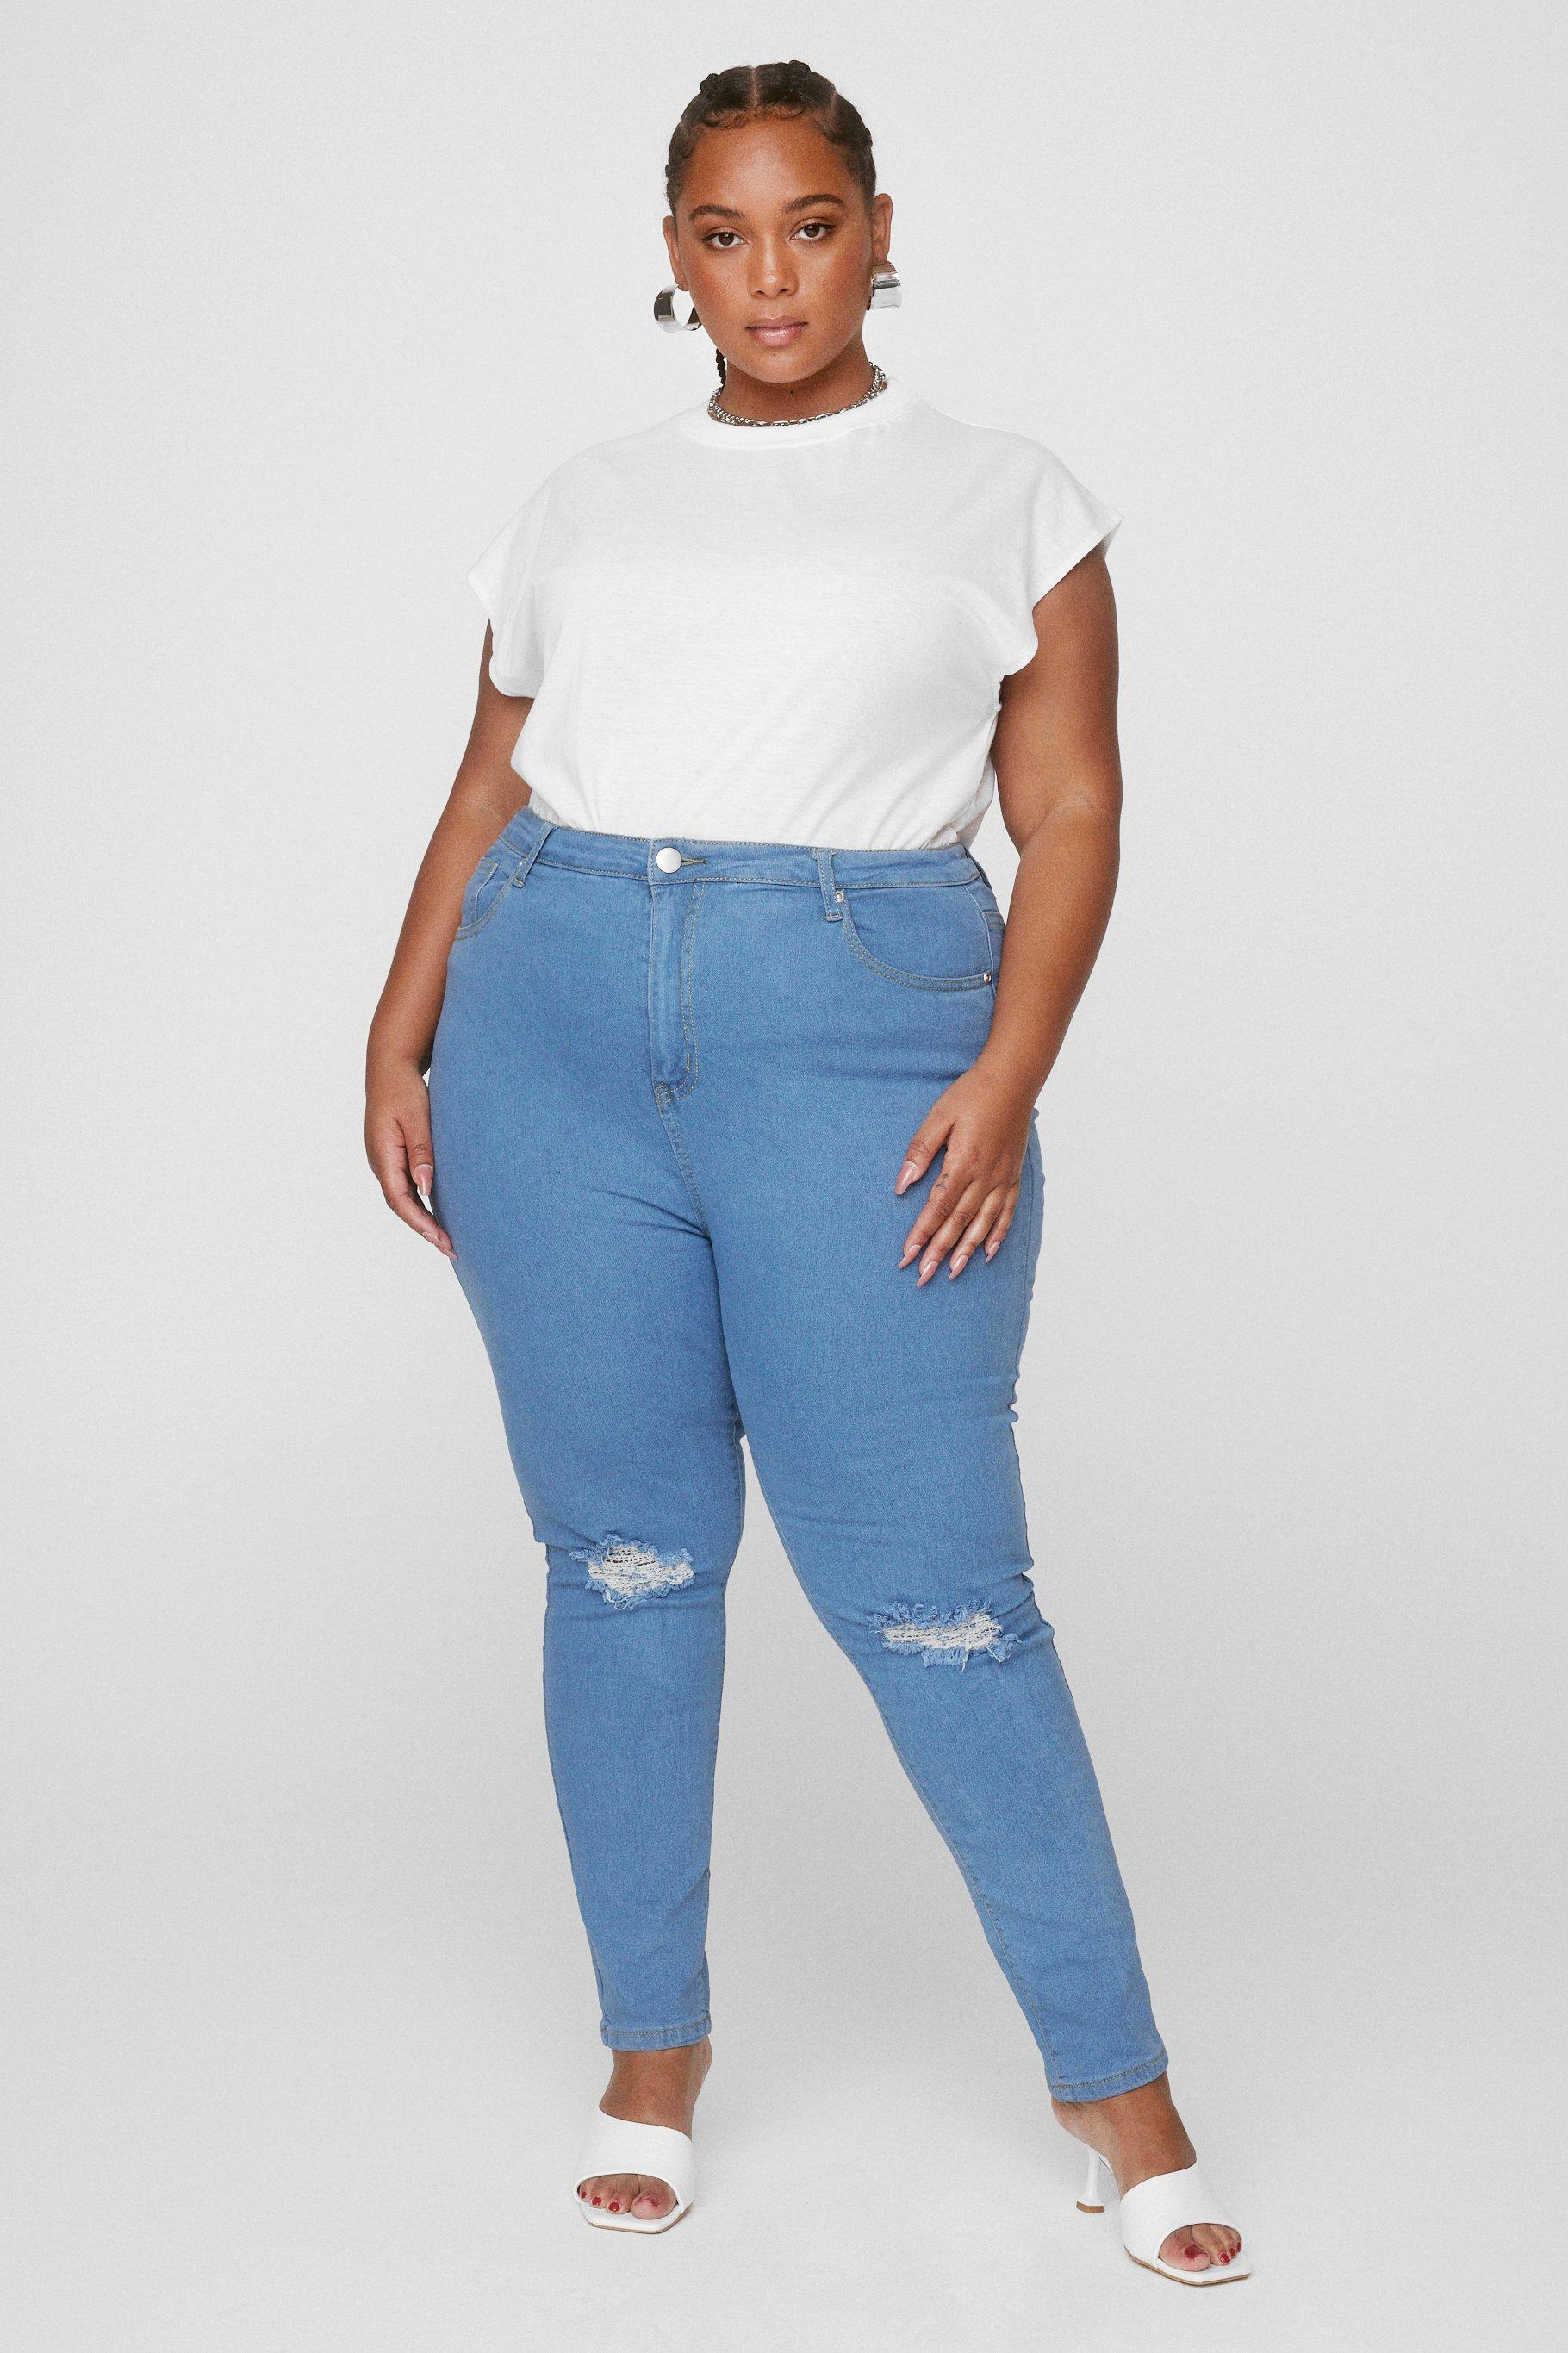 Get a Shred Start Plus Skinny Jeans 8